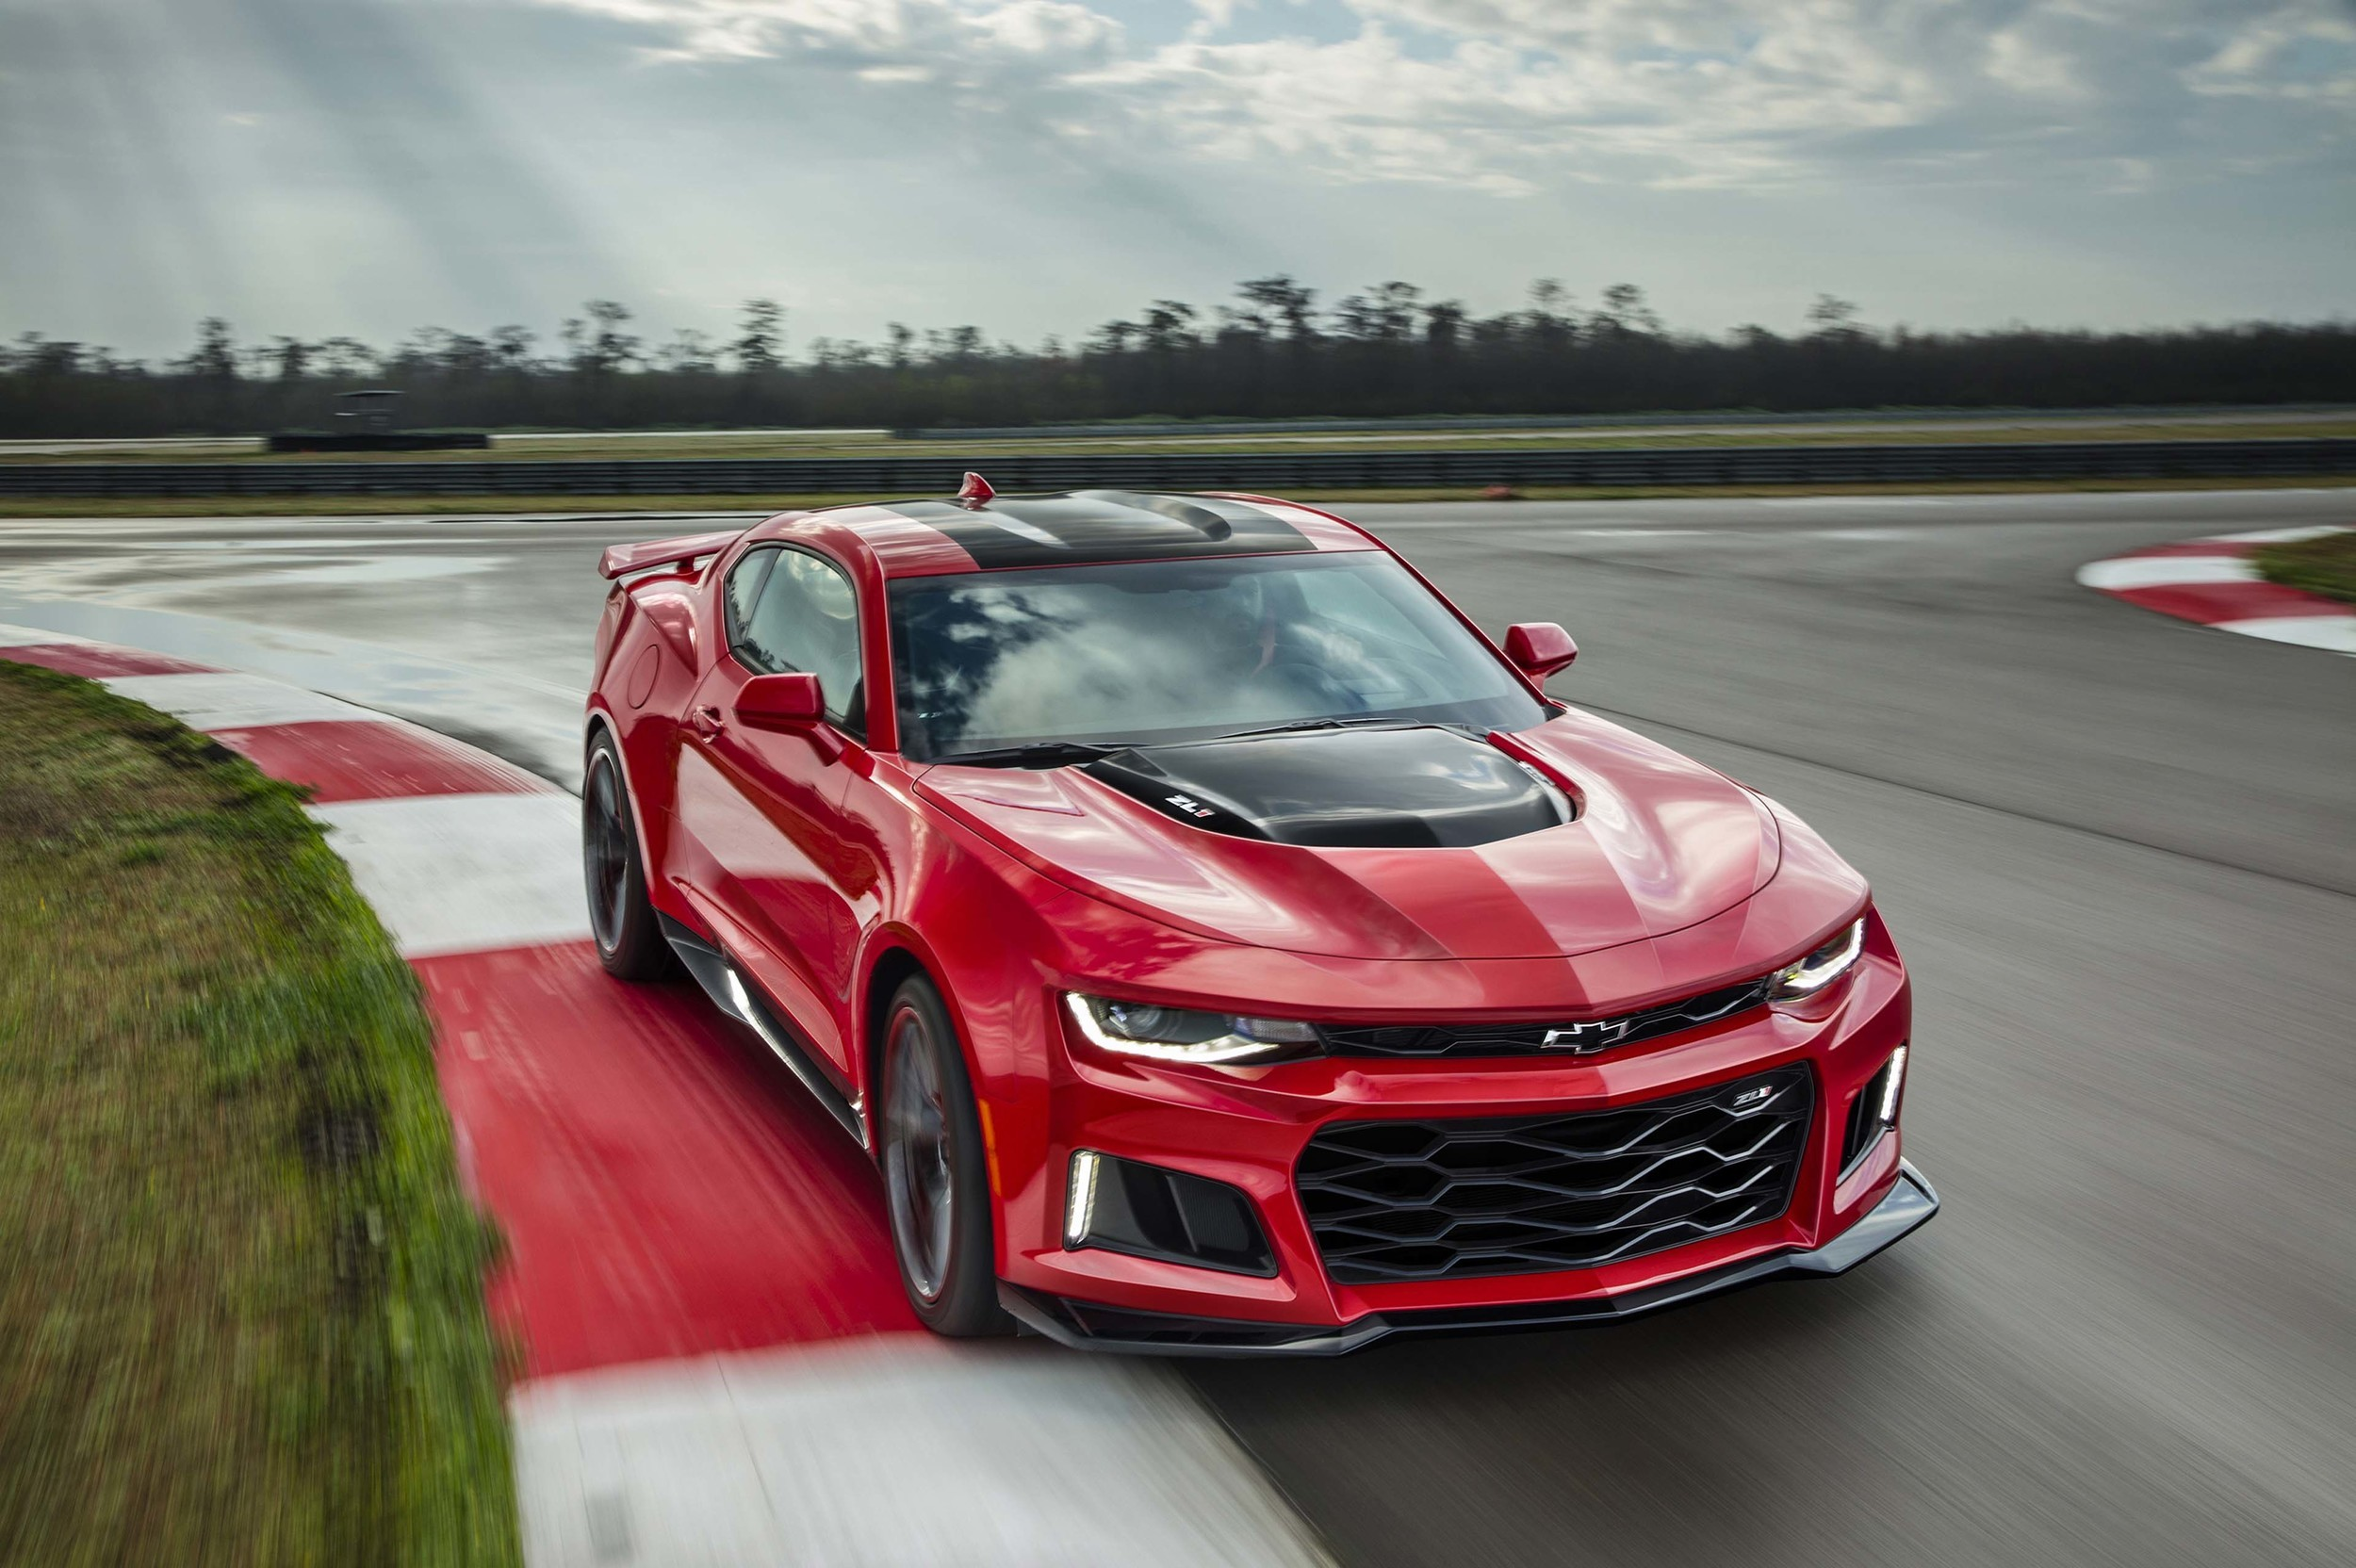 2017 Chevrolet Camaro SS photo - 4